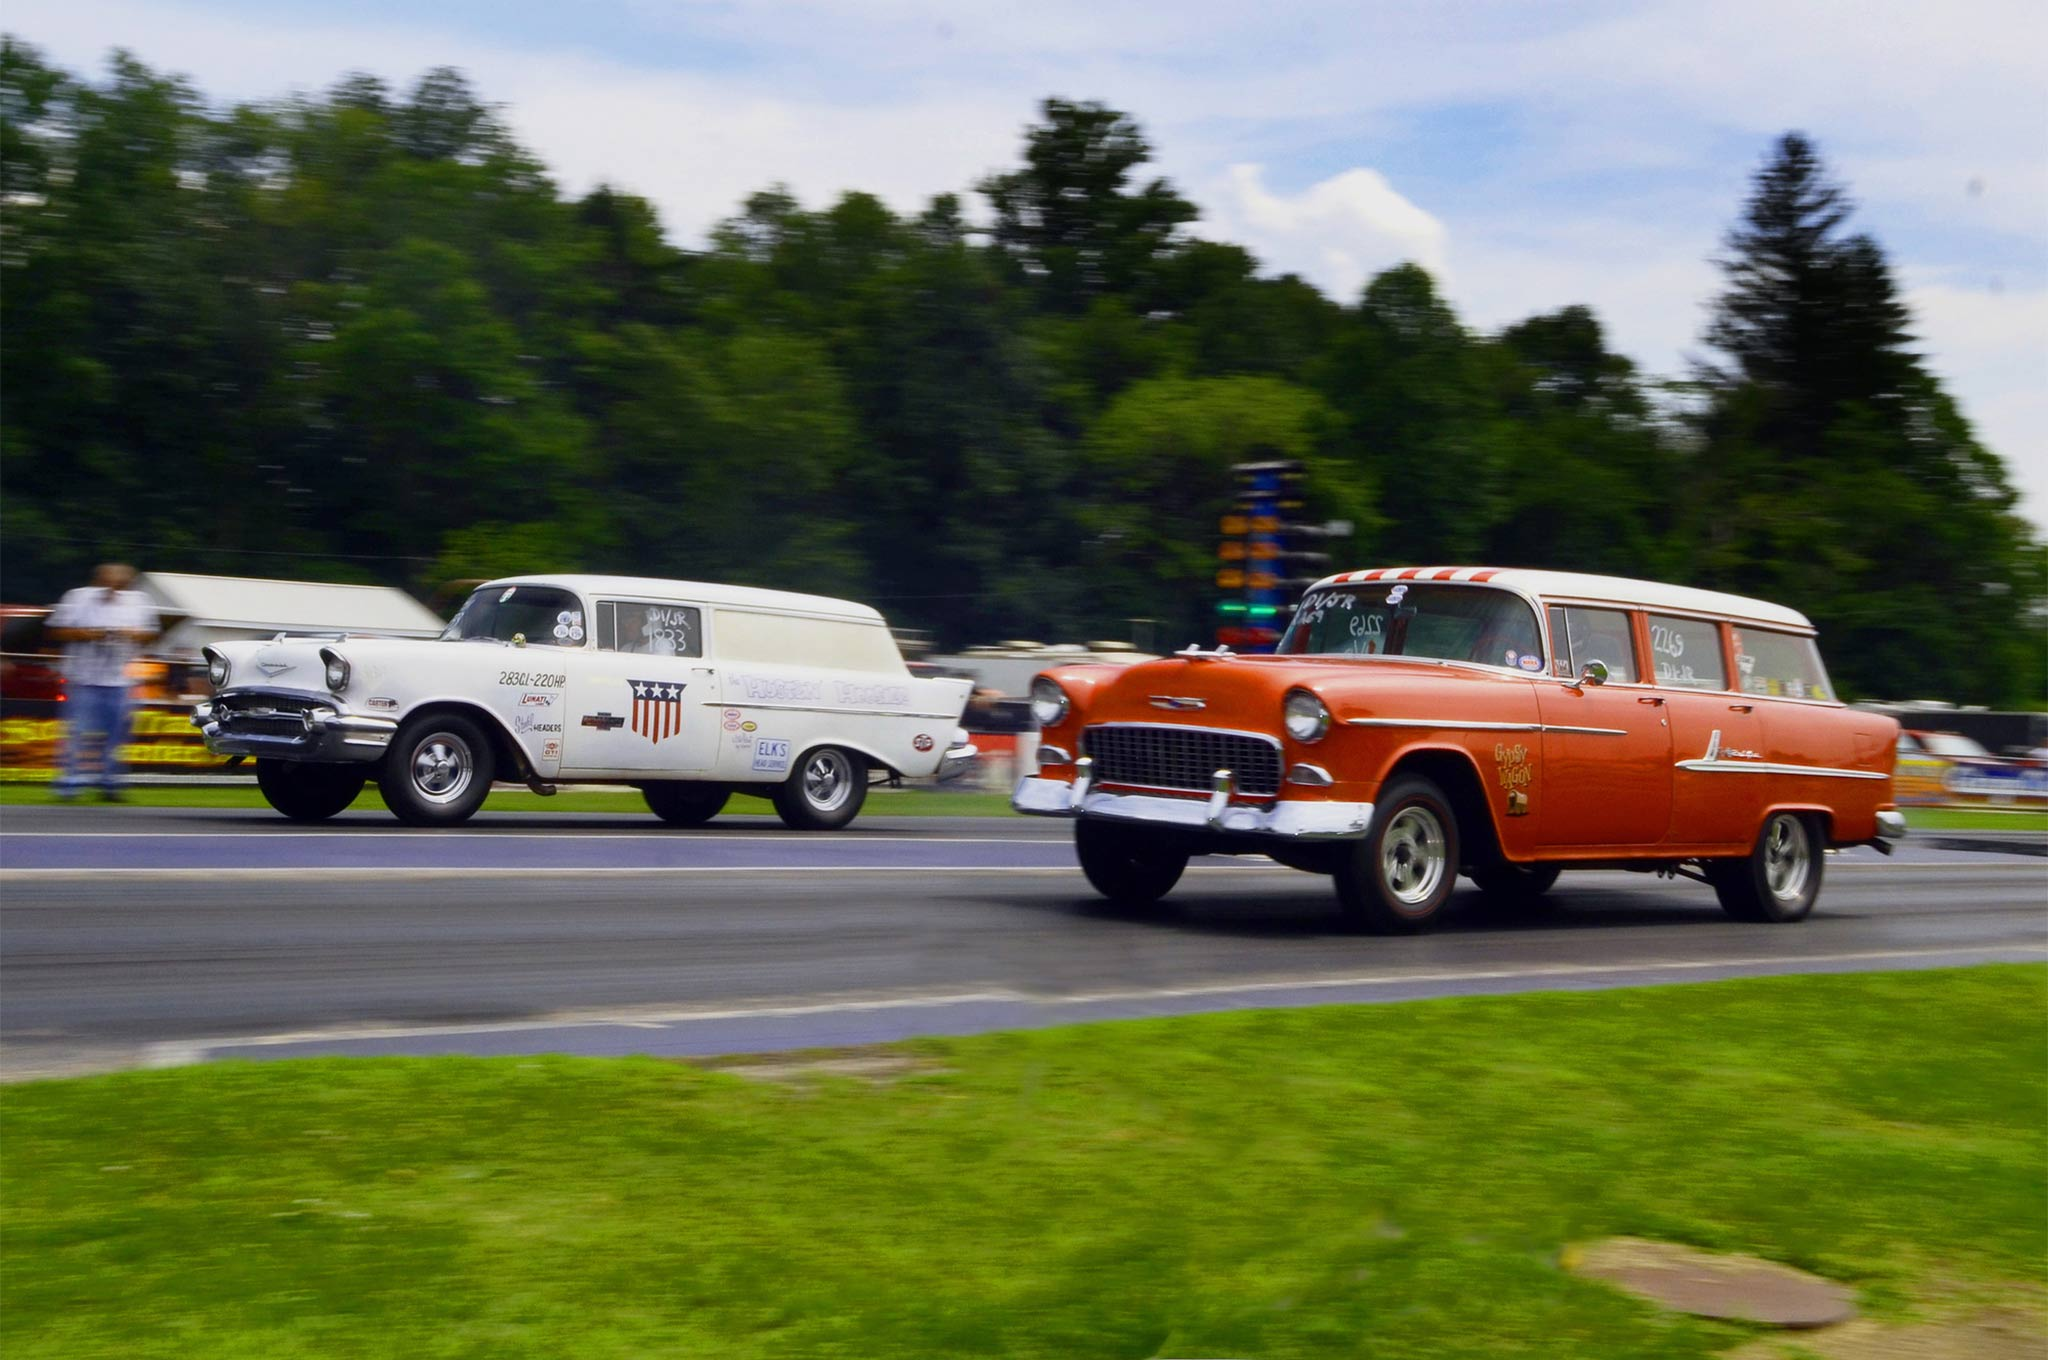 The winner of D1/JS at Beaver Springs was not one of the cars that displayed at York but a regular, Mike Szollosky from Wharton, New Jersey, seen in the foreground. McCardle told us that Mike and his dad make every Nostalgia event, Mike in the wagon and his dad in a yellow 1957 two-door post car, so they did have the most practice!